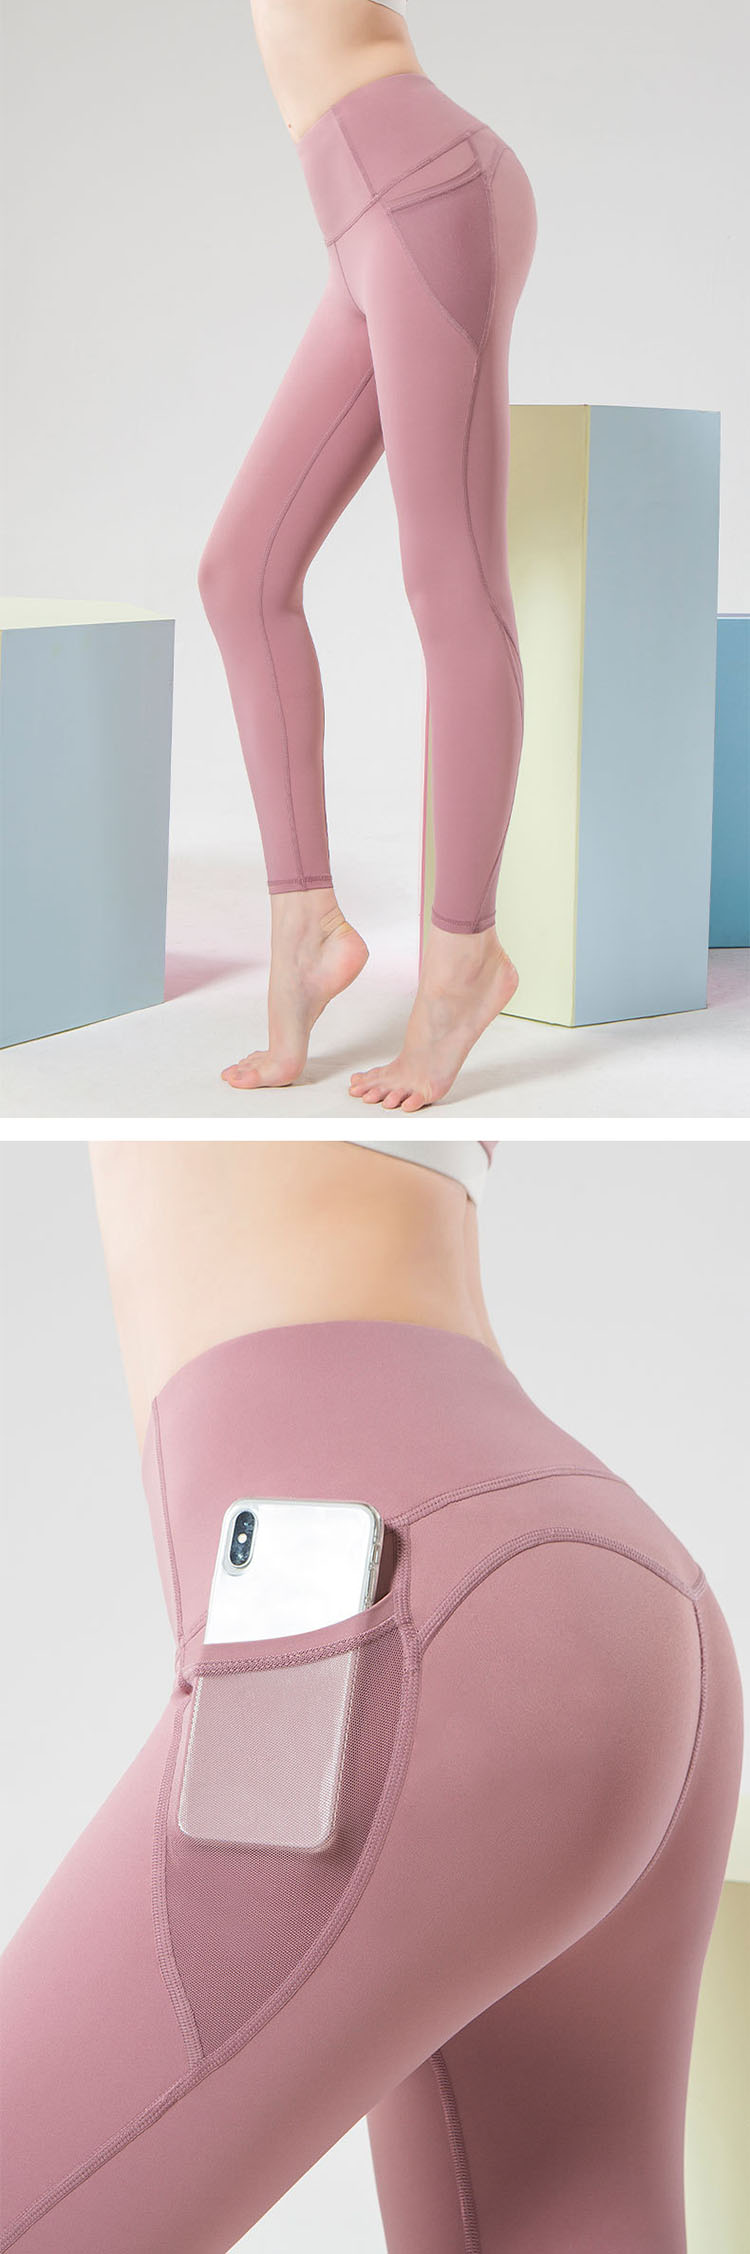 Improve waist support and hide small belly